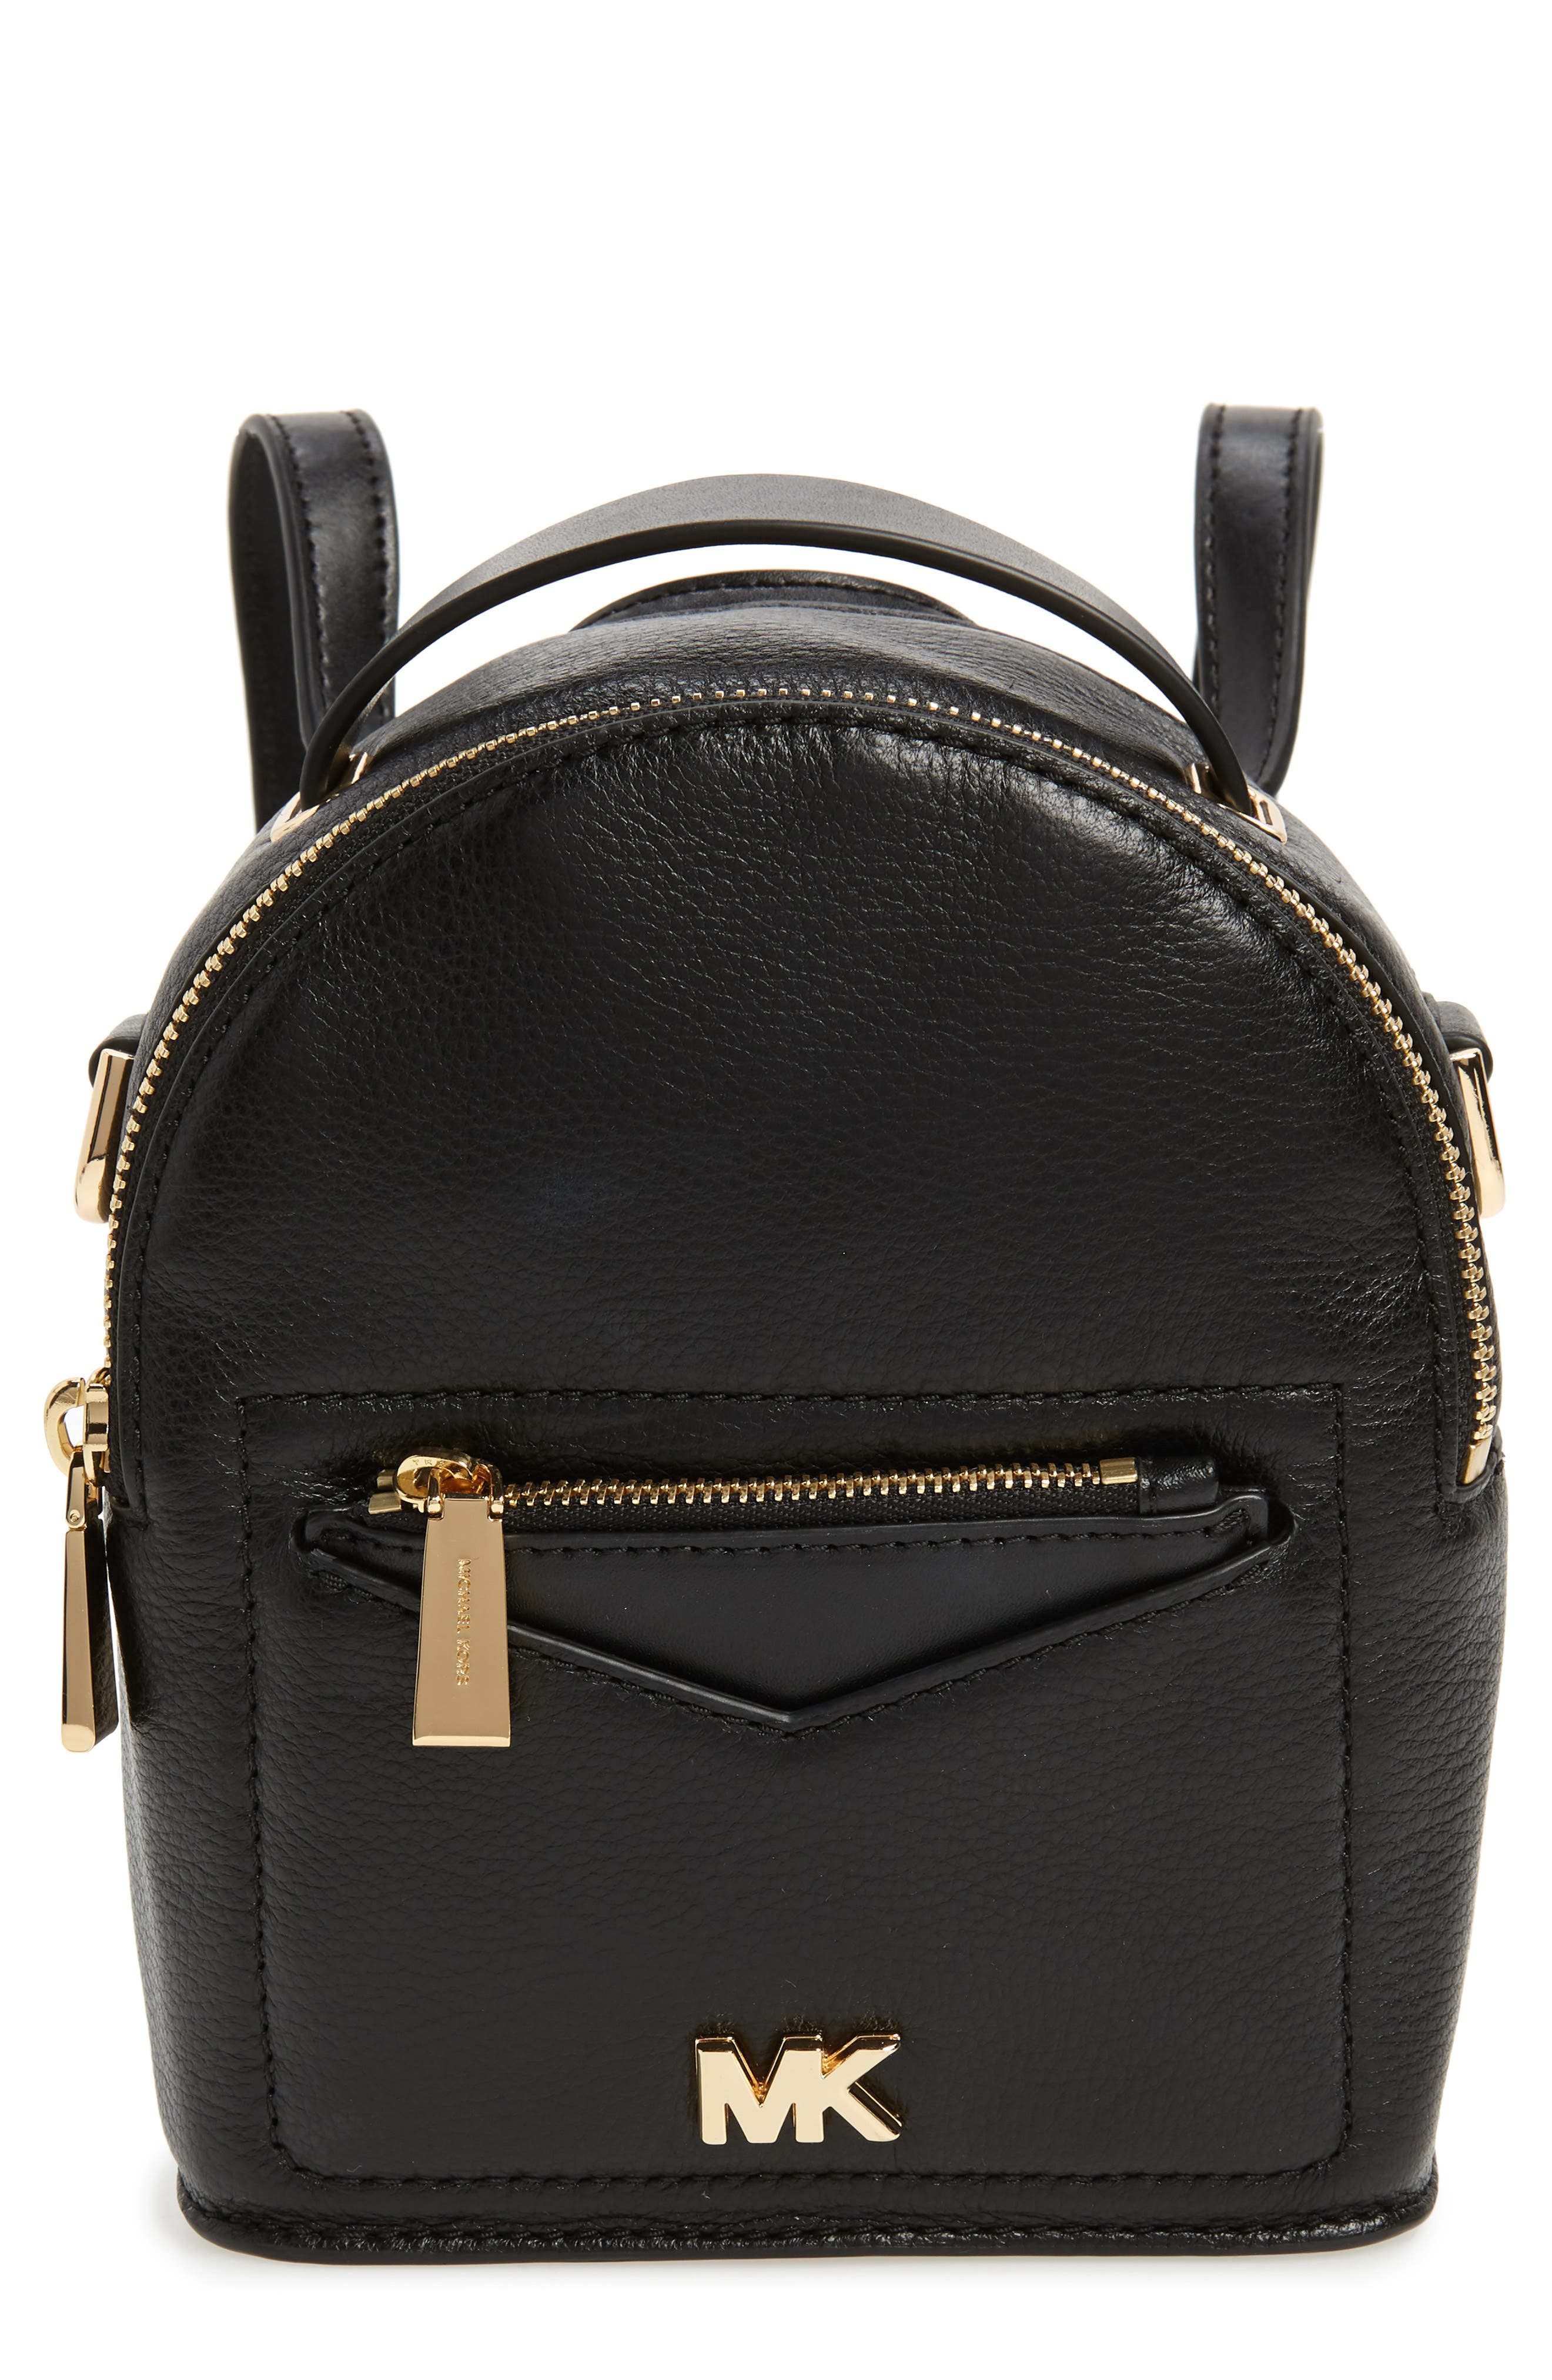 X-Small Convertible Leather Backpack,                         Main,                         color, Black